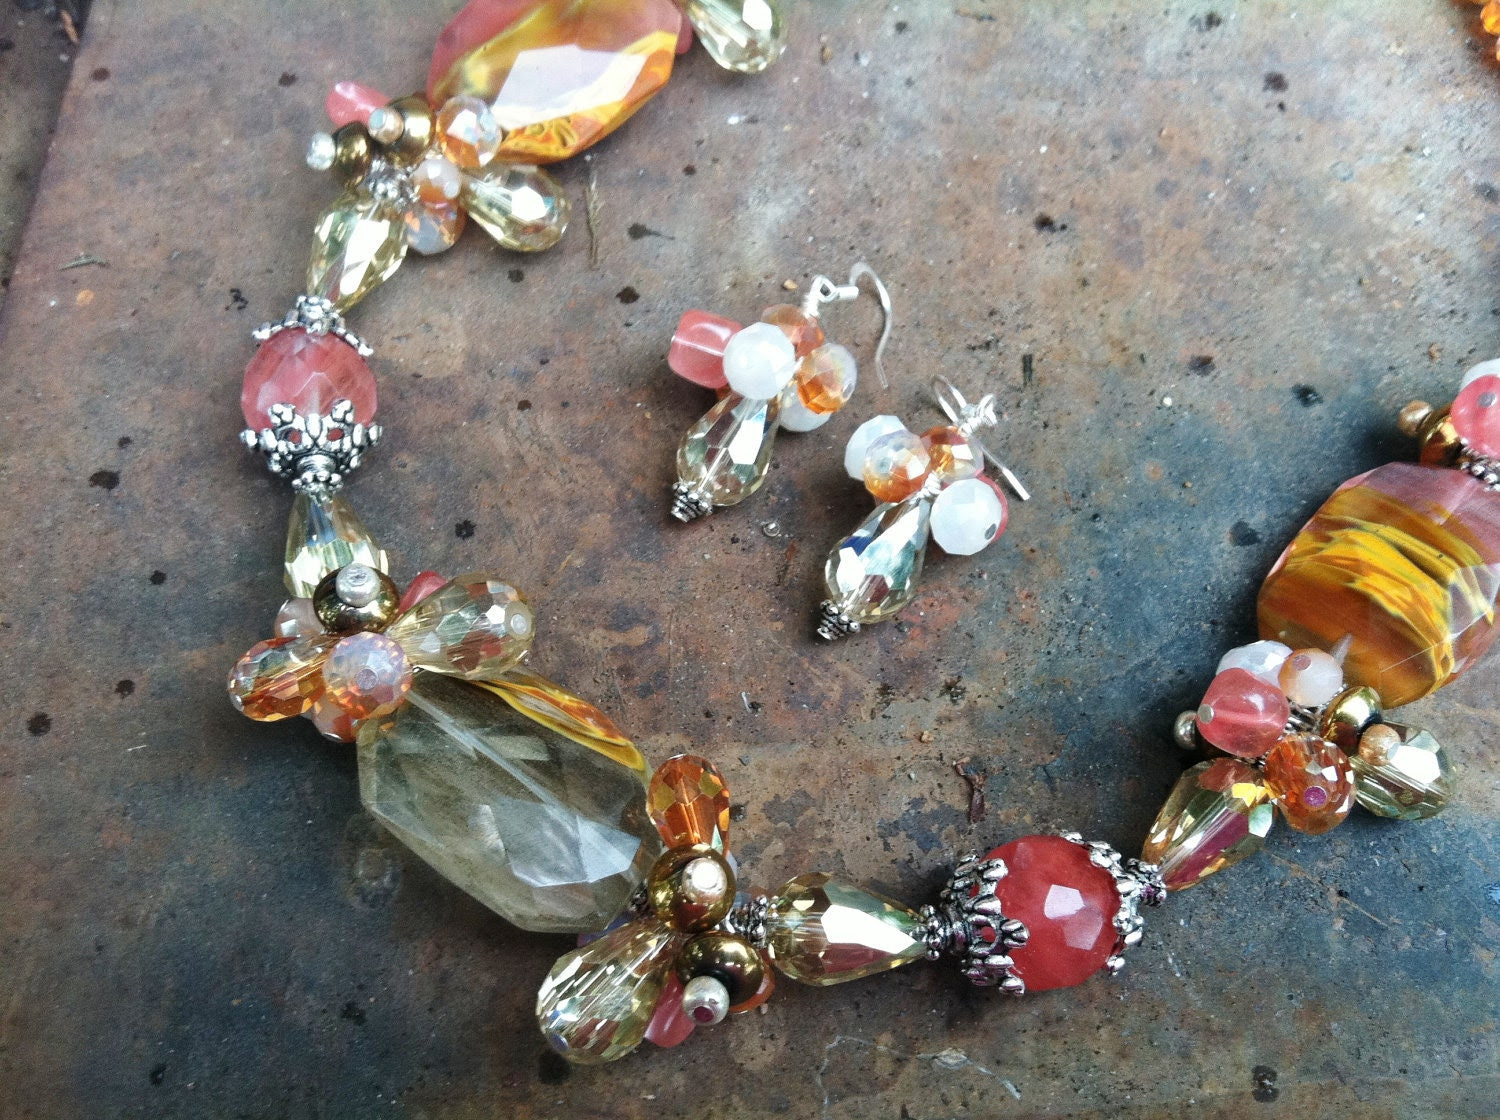 Cherry and Volcano Quartz with Glass Beads and Crystals Necklace and Earrings